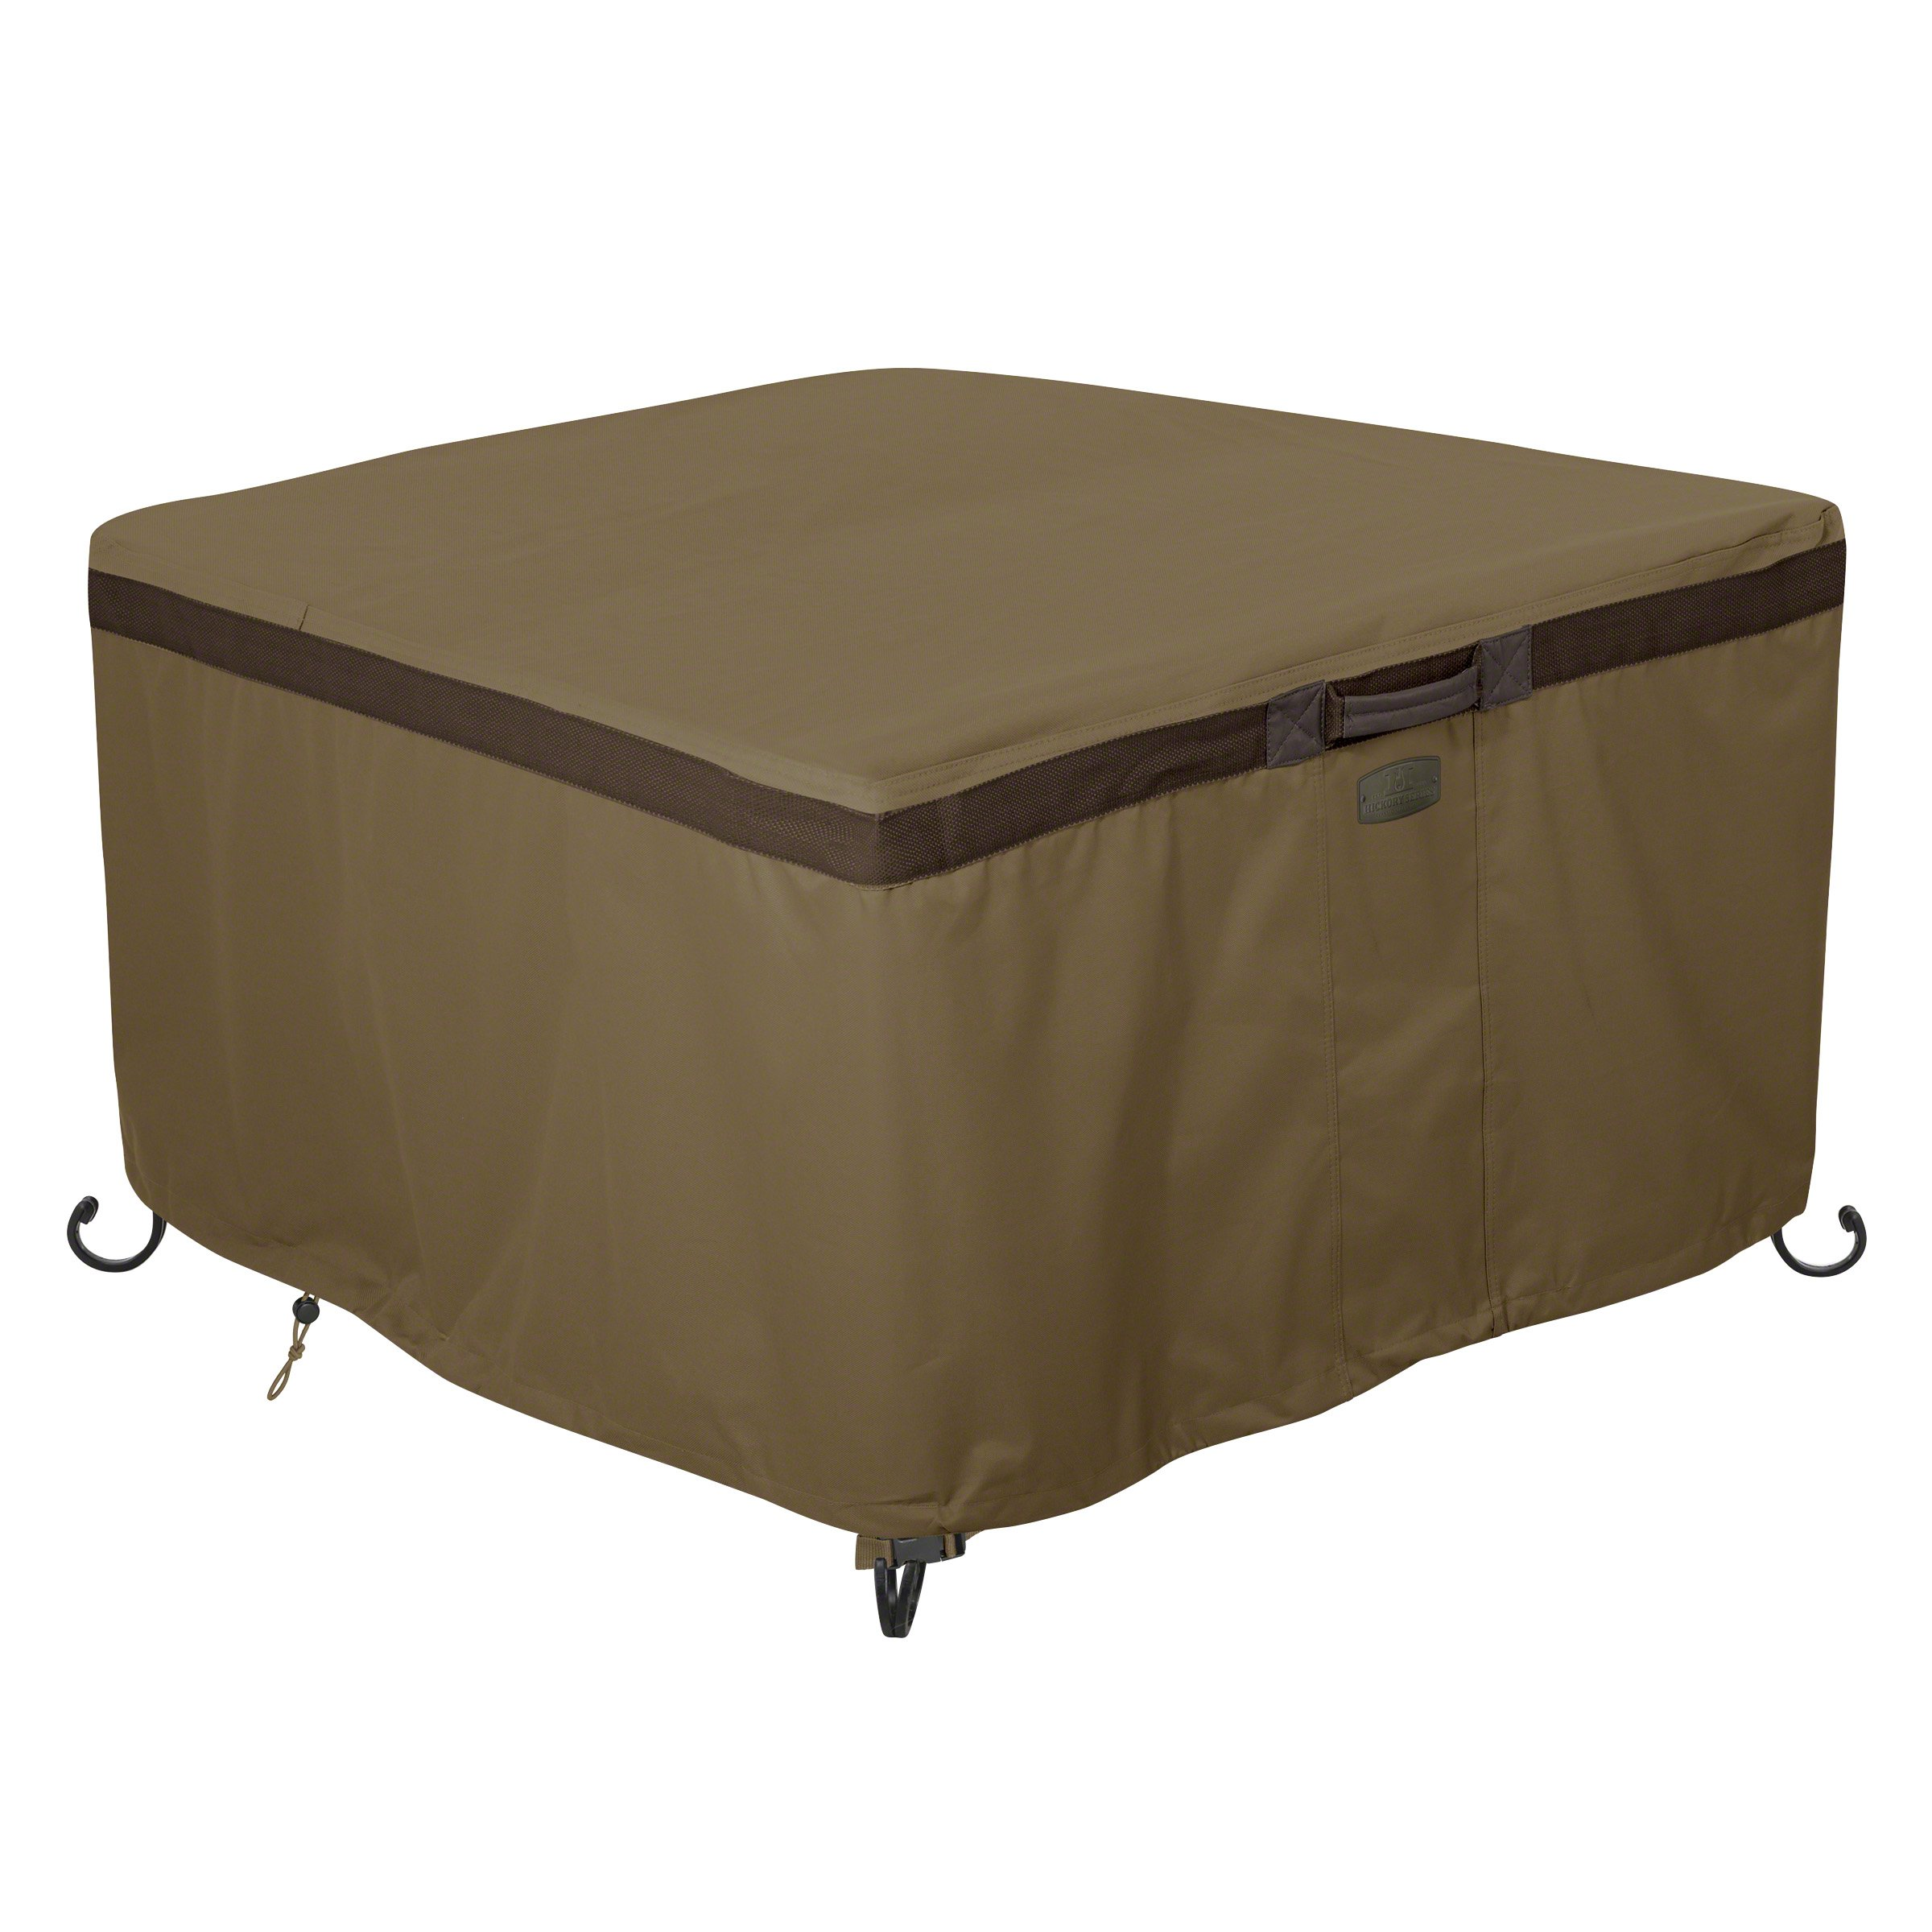 Classic Accessories Hickory Heavy Duty 42'' Square Fire Pit Table Cover - Durable and Water Resistant Patio Cover (55-637-240101-EC)